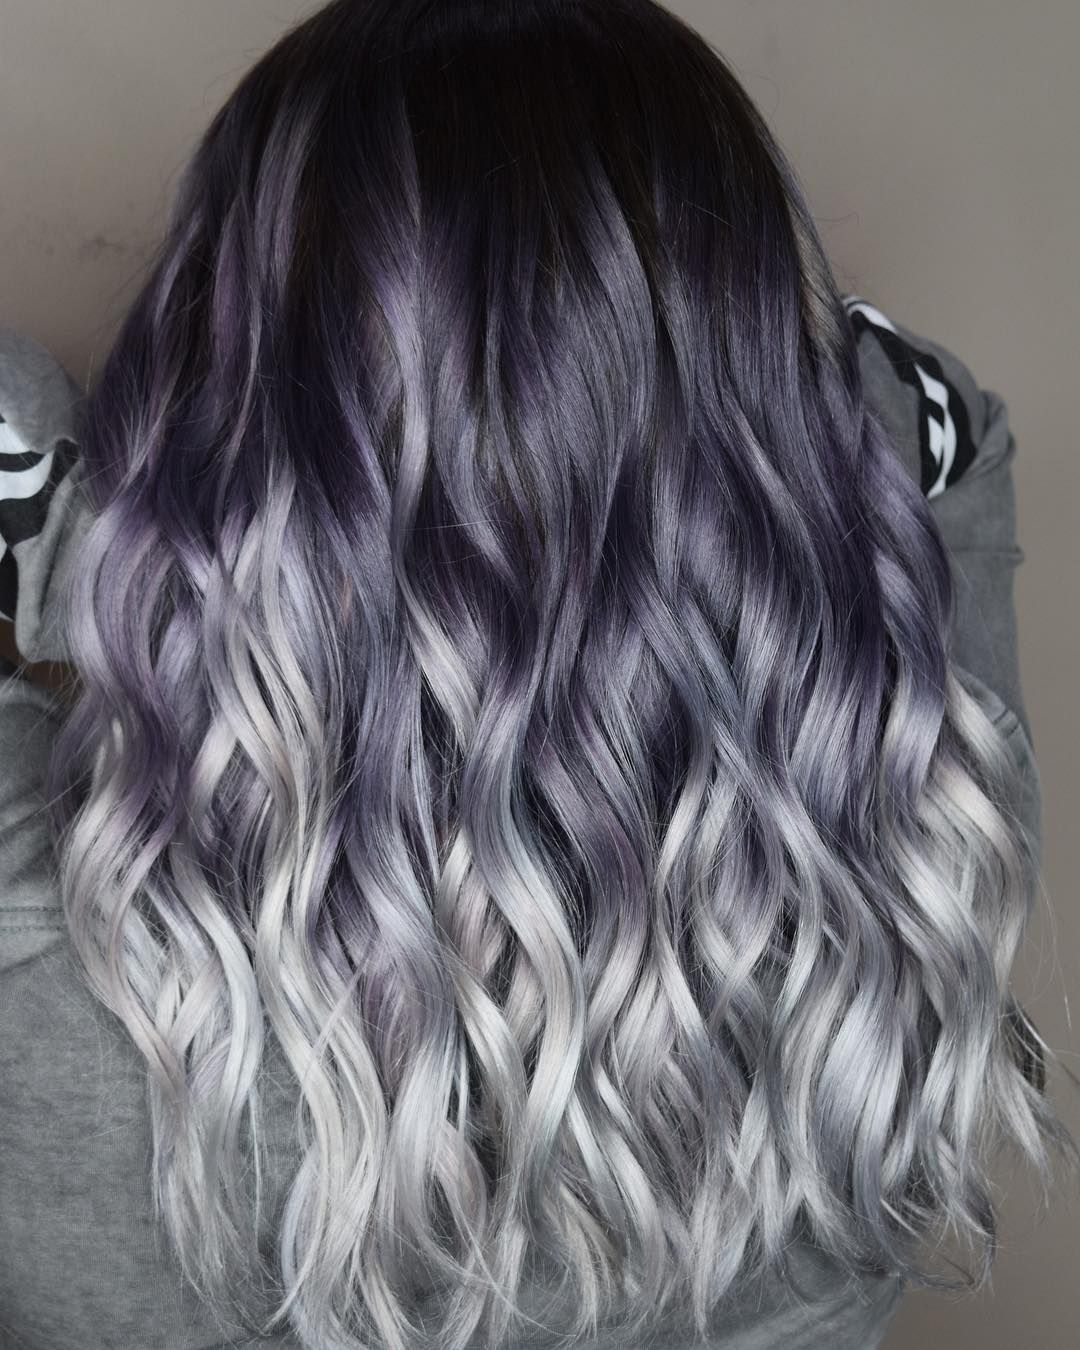 What Is Ghosted Hair Color? - Simplemost